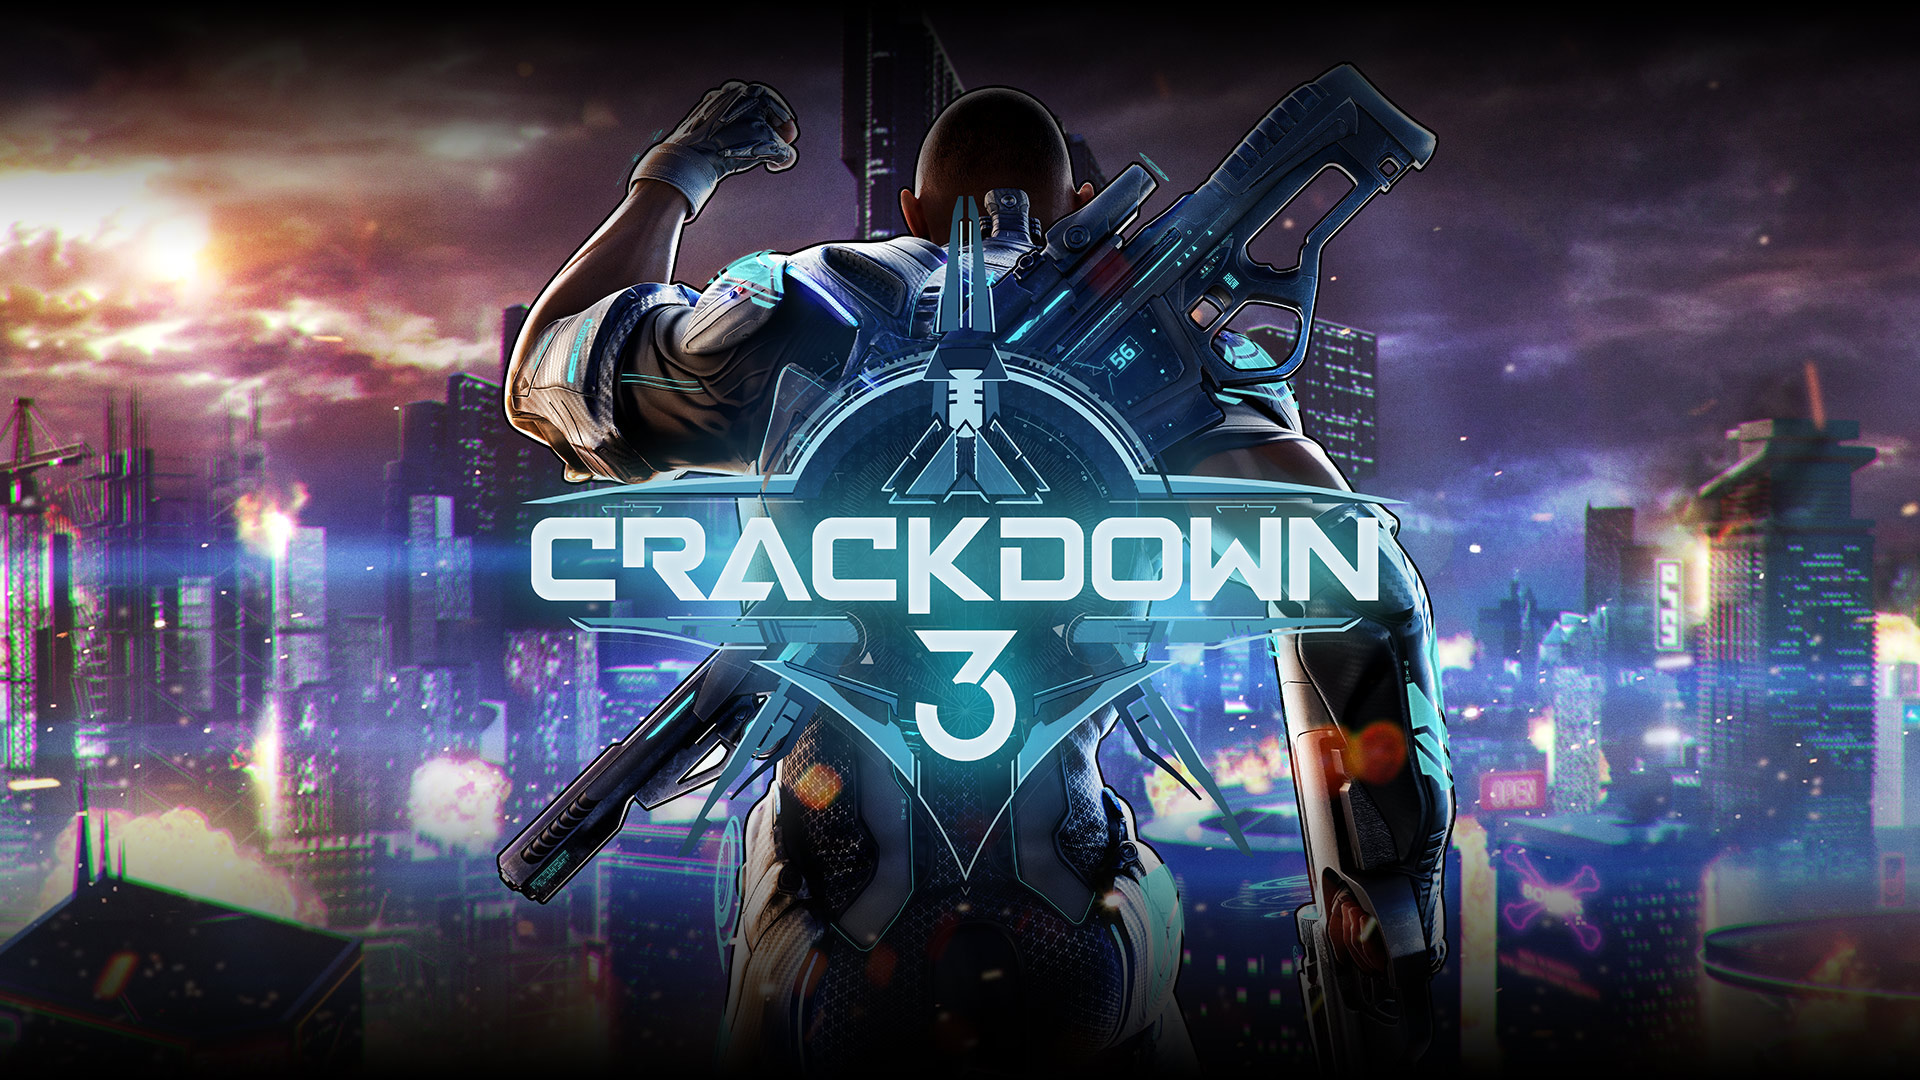 Crackdown 3 multiplayer test starts tomorrow on Xbox One and PC